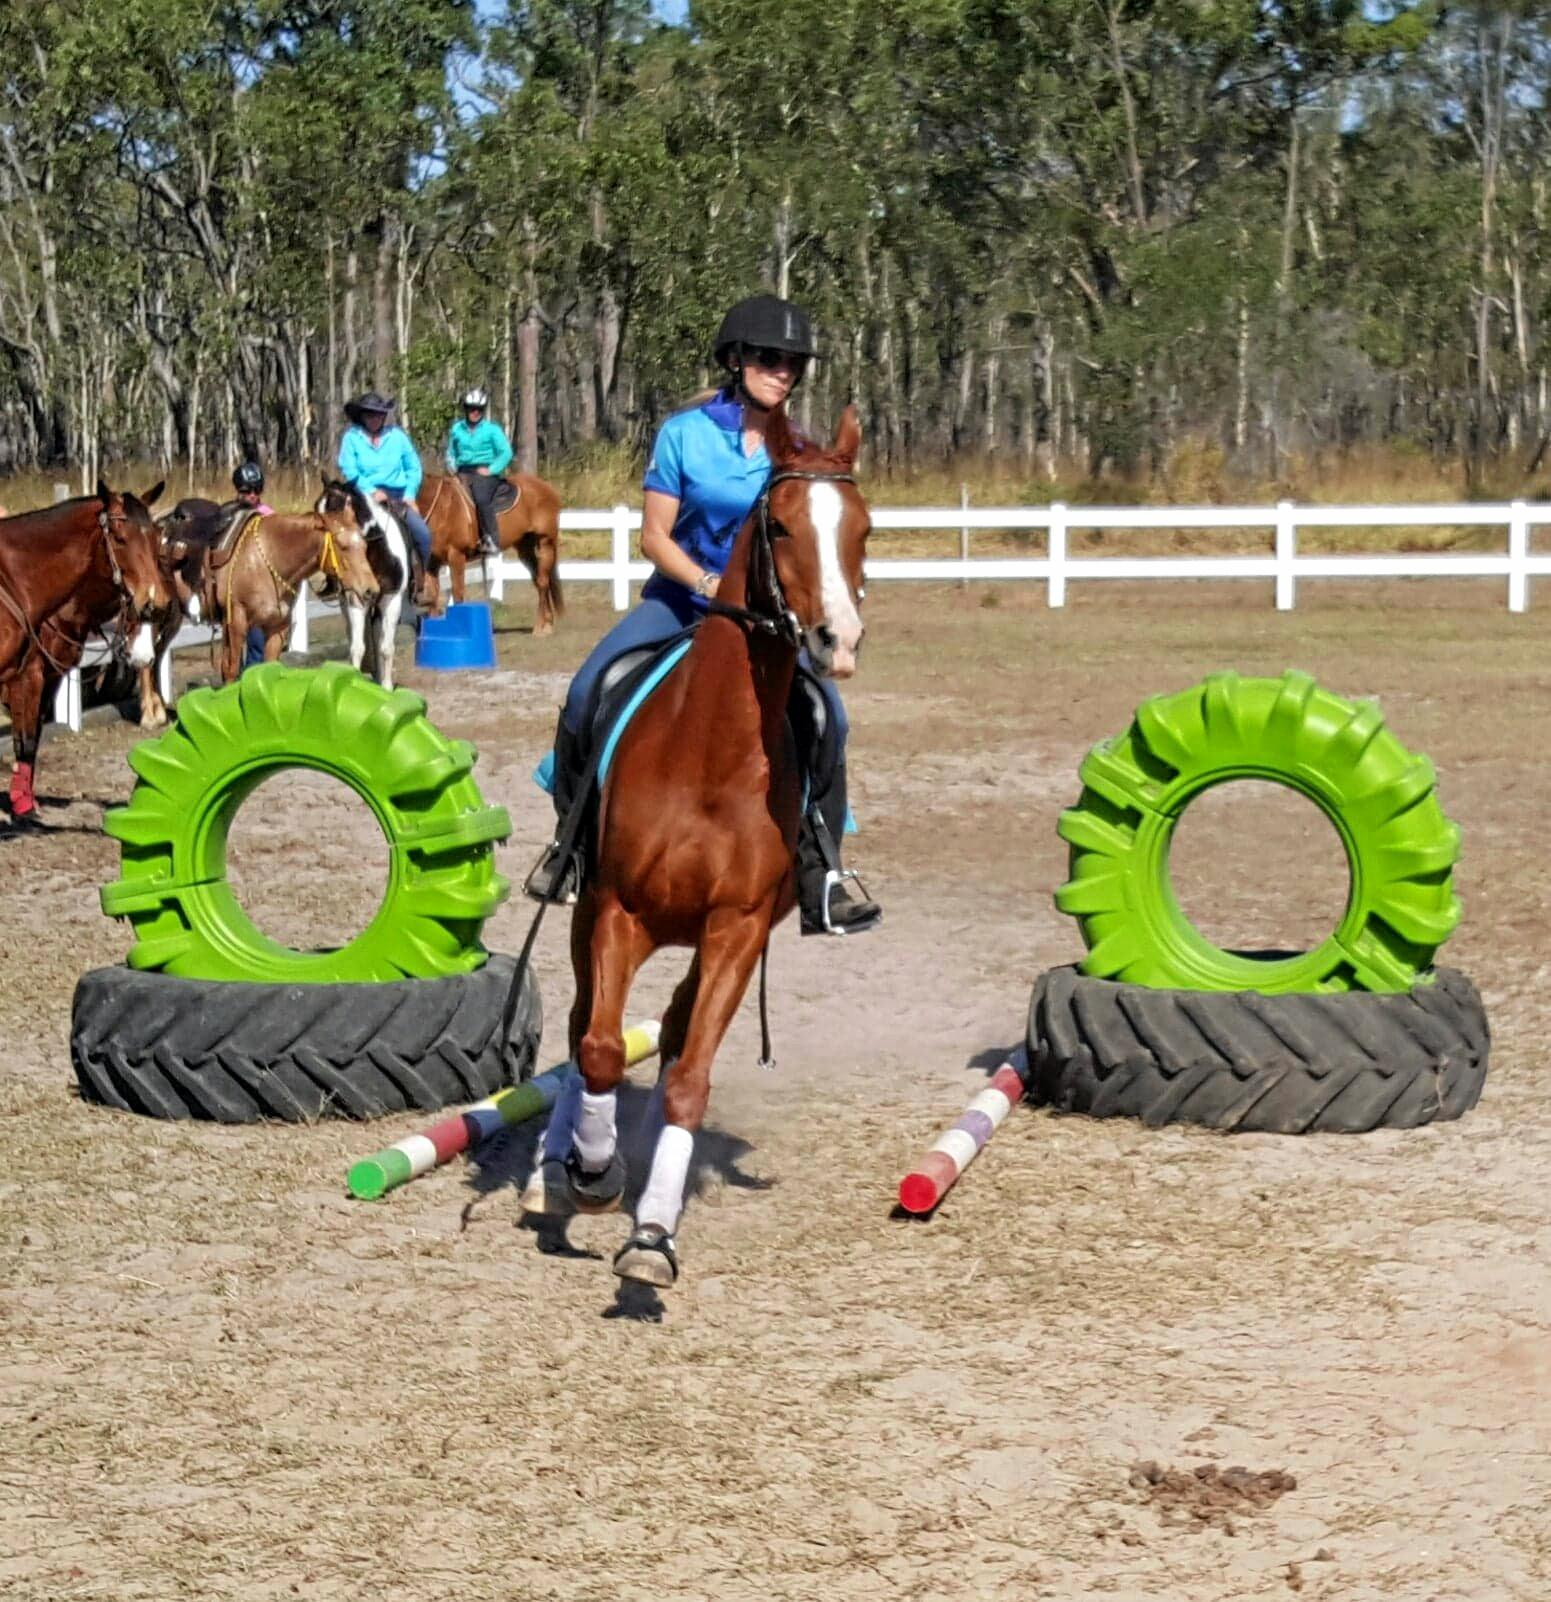 Burrum District Active Riders Cole Cameron One-Day Clinic held last month at Tobanlea.